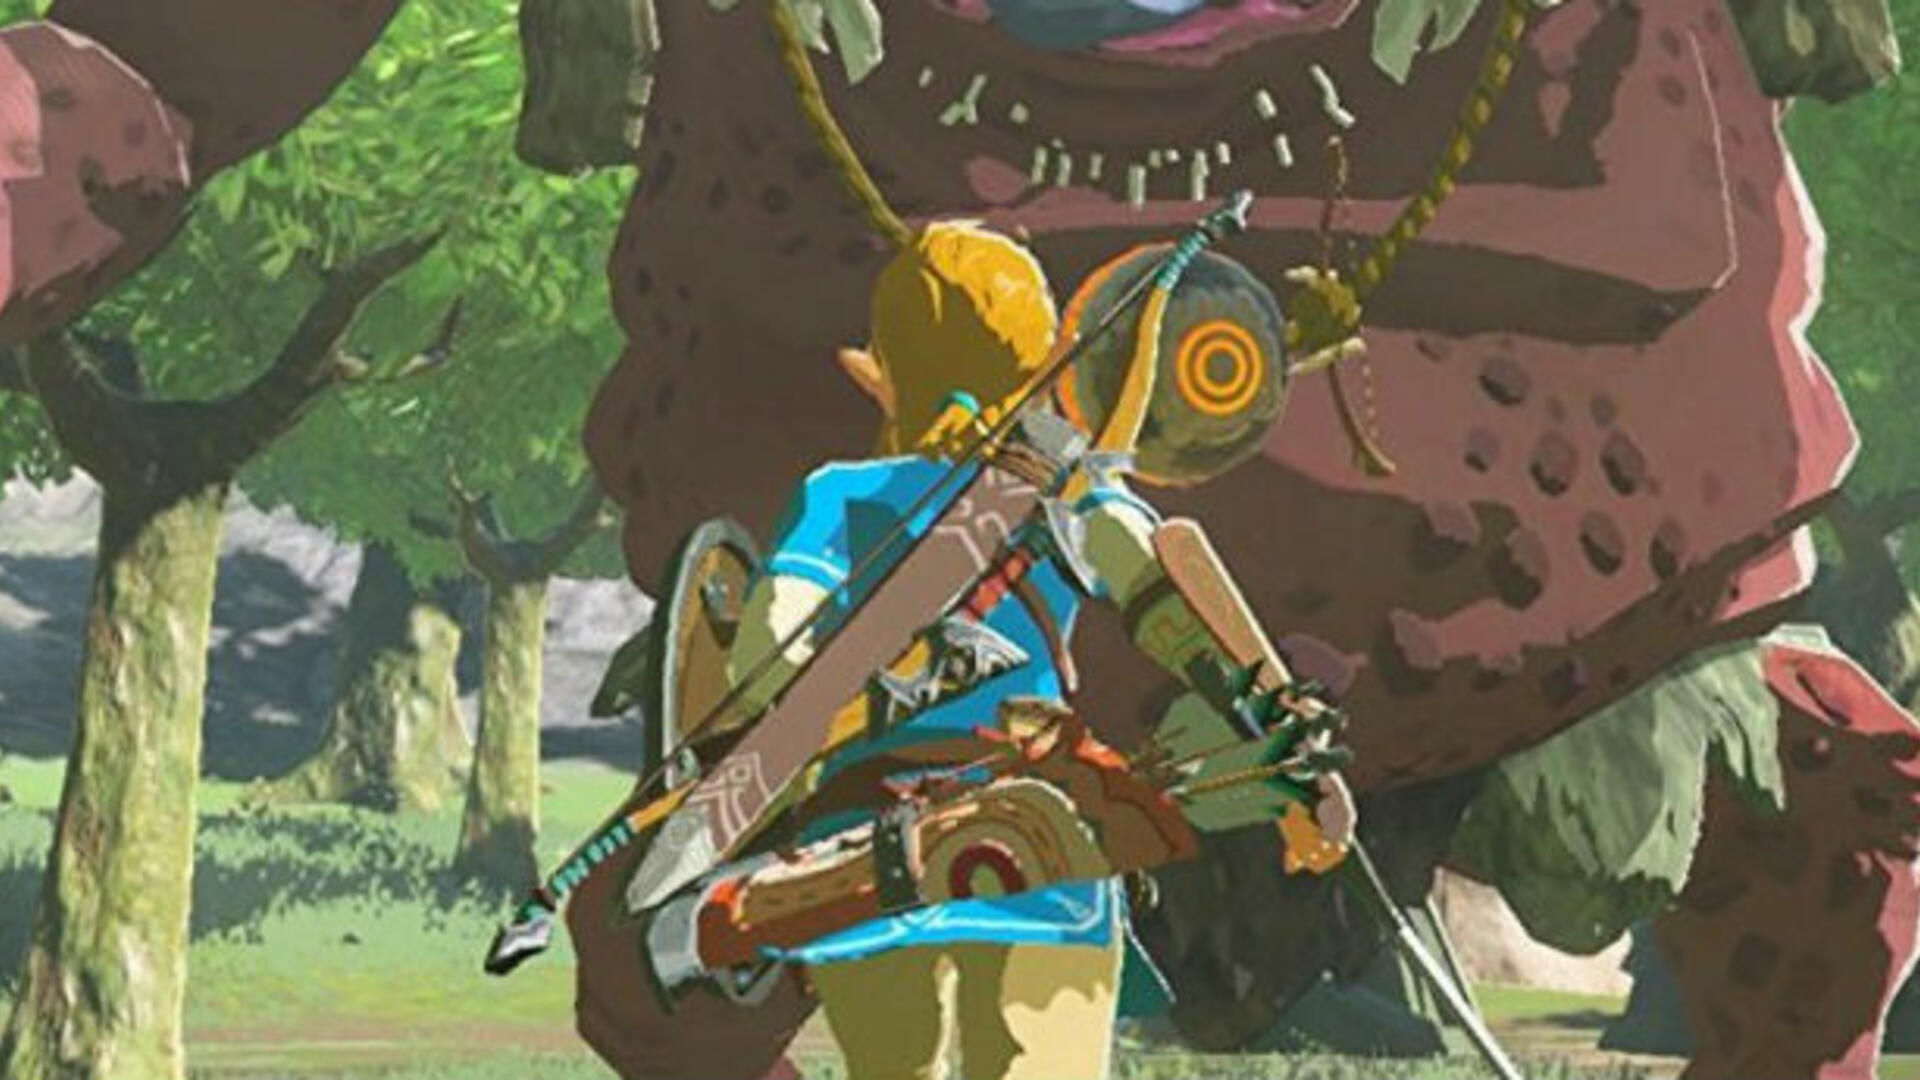 New Interview Has Fans Worried Zelda: Breath of the Wild Doesn't Contain Traditional Dungeons